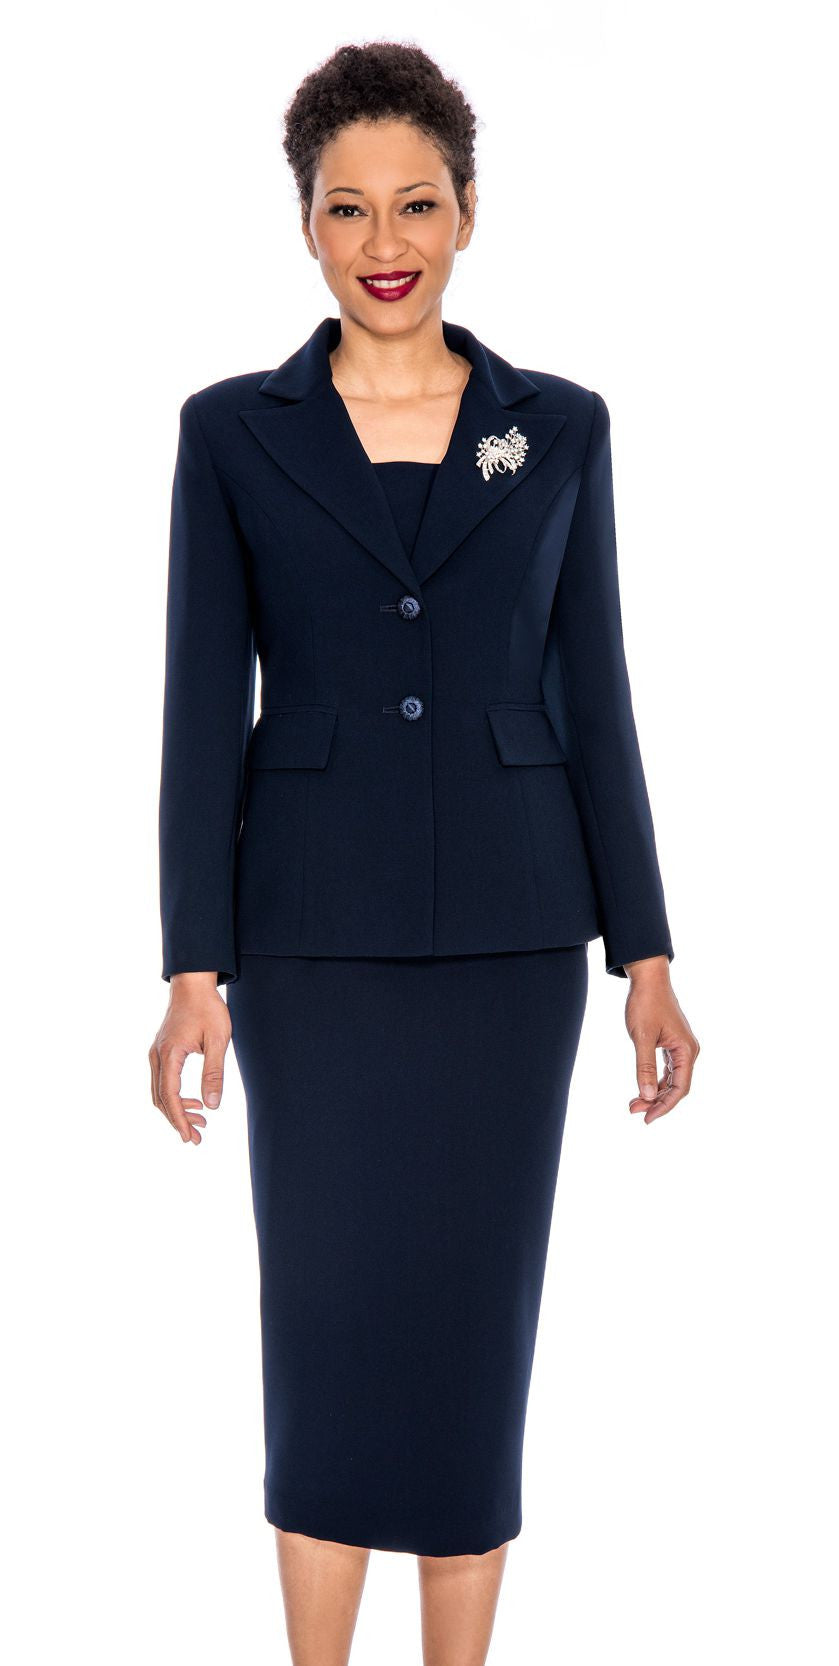 Giovanna Church Suit 0710-Navy - Church Suits For Less